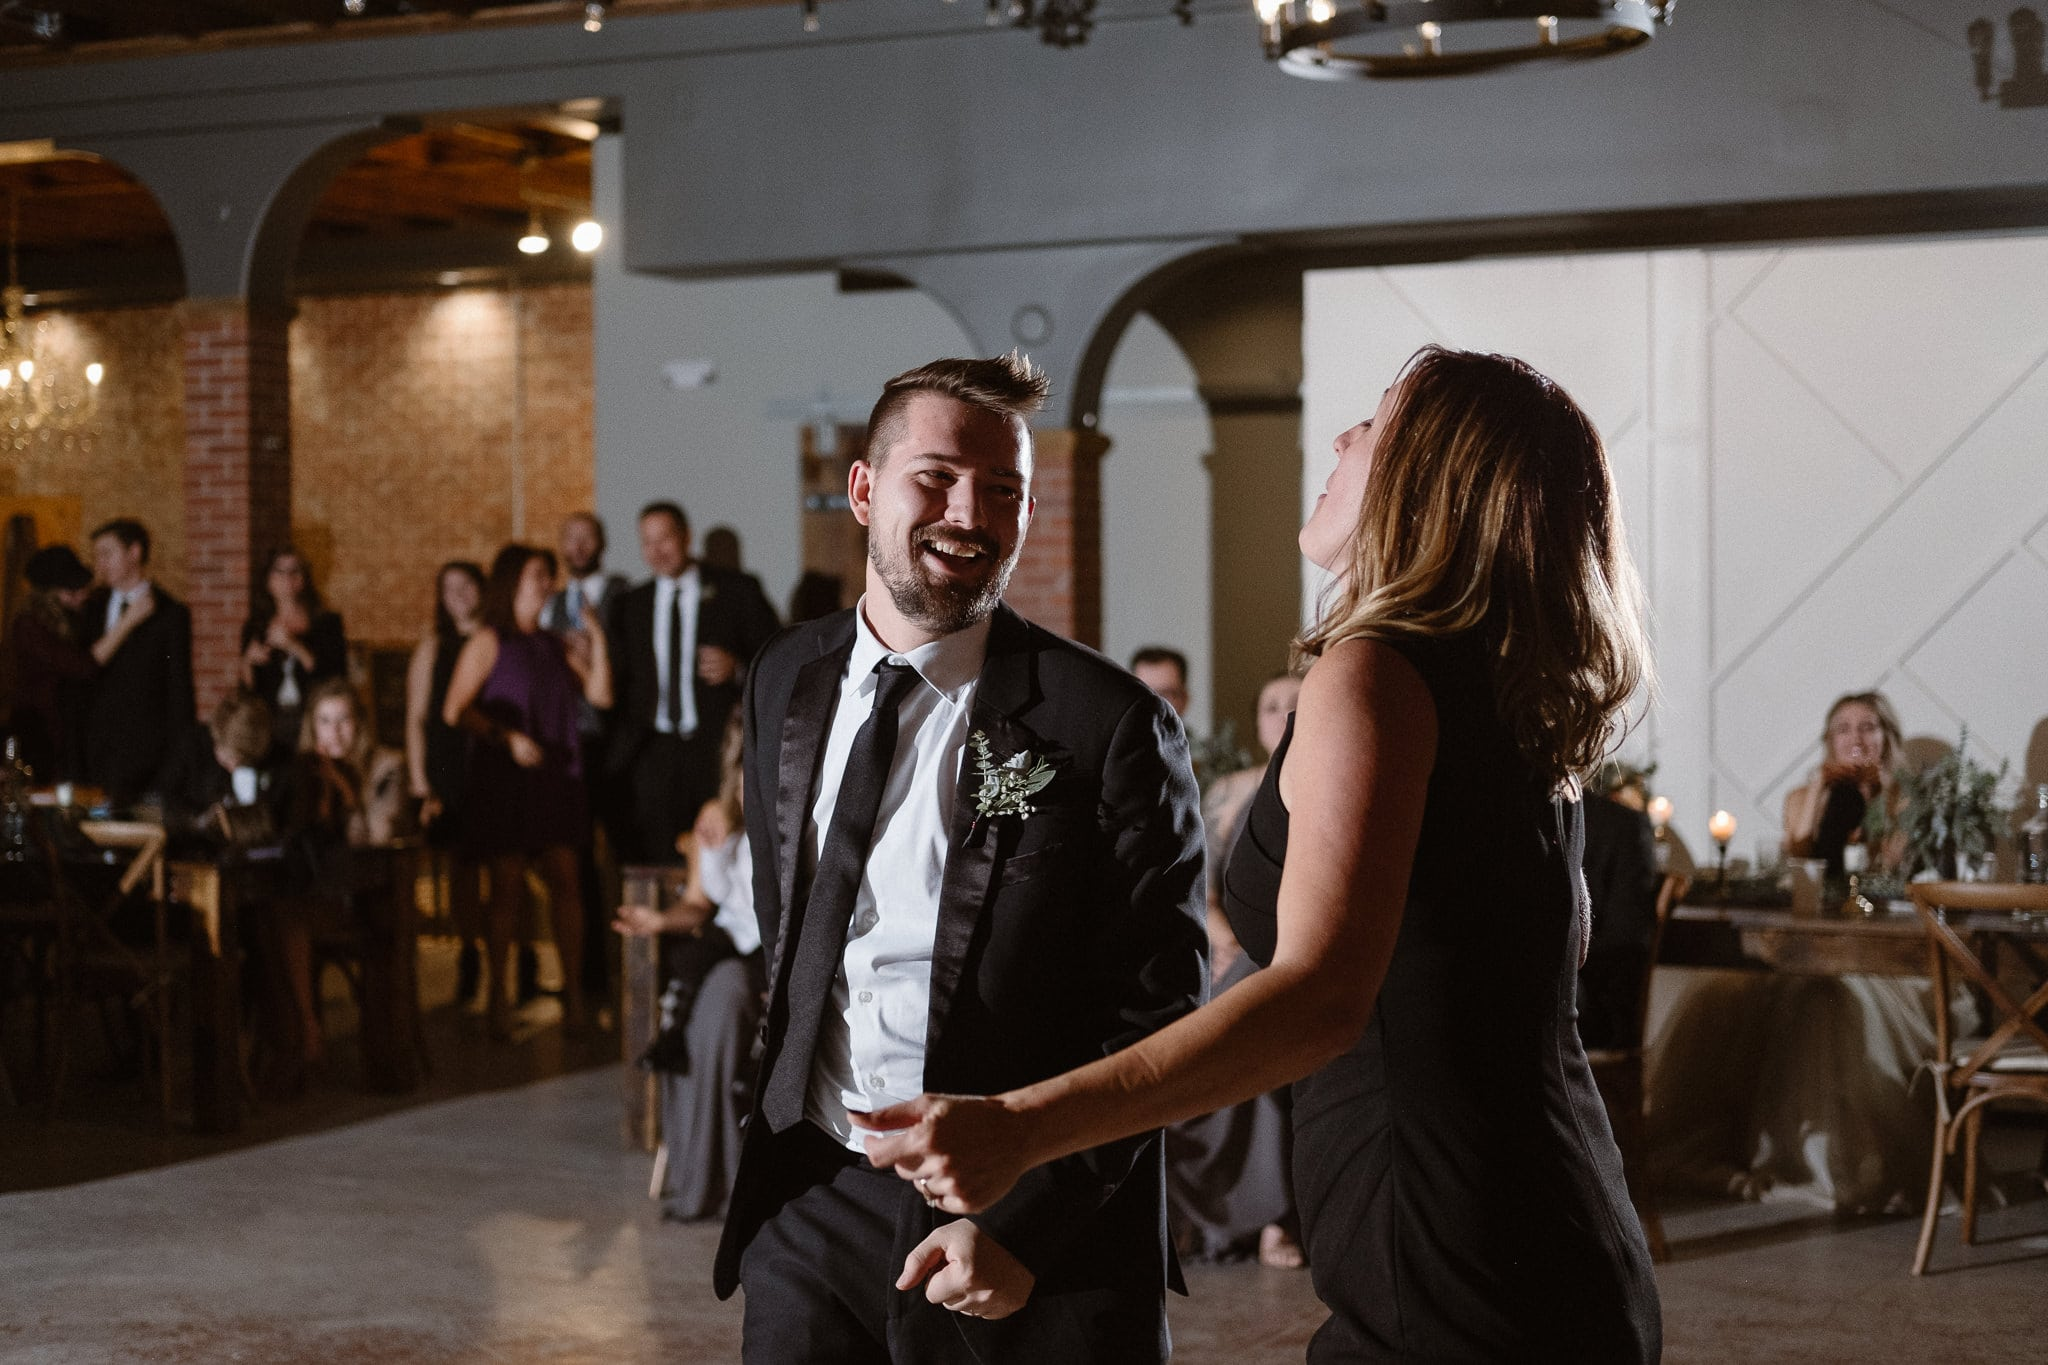 St Vrain Wedding Photographer | Longmont Wedding Photographer | Colorado Winter Wedding Photographer, Colorado industrial chic wedding ceremony, groom dancing with his mother, off camera flash photography reception lighting